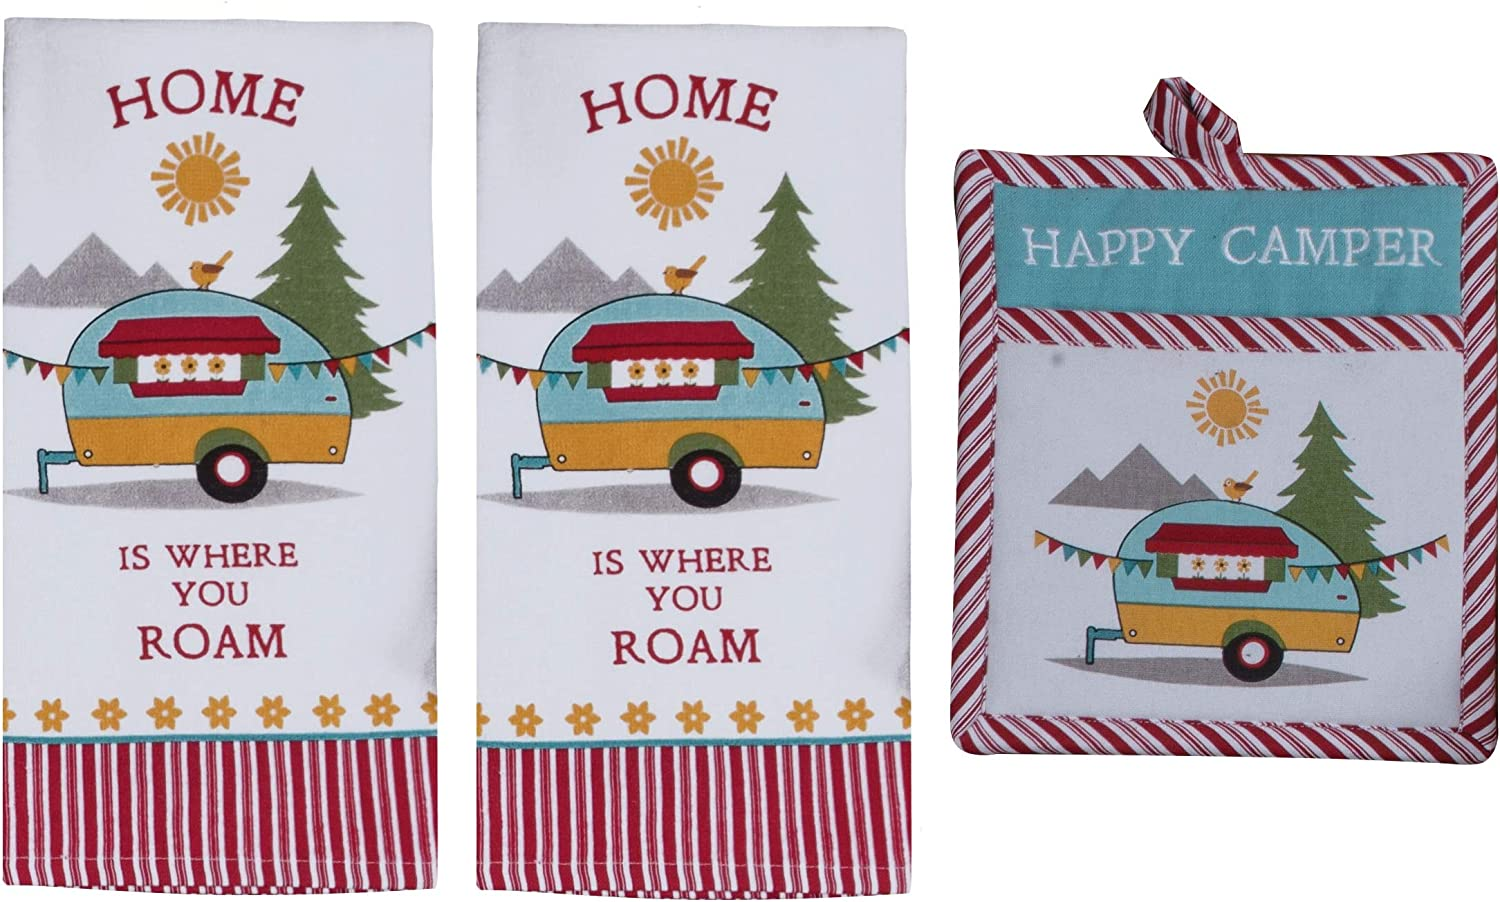 Kay Dee 3 Piece Home is Where You Roam Camping Terry Towels and Potholder Set